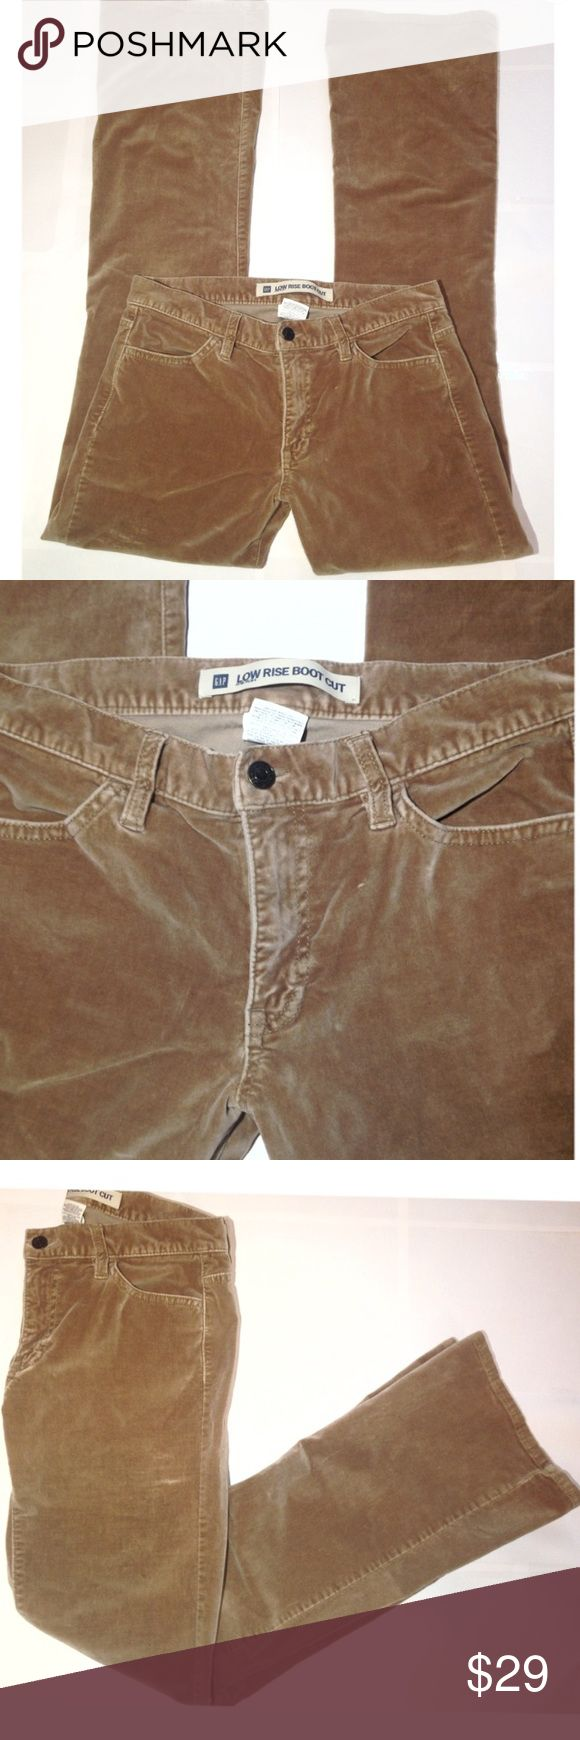 Gap velvet tan Pants size 4 SIZE 4 R Velvet feel tan Gap pants low cut boot cut jeans. Belt loop, back pockets and front pockets. Excellent pants! Great for casual formal wear parties dinners work after work weddings spring summer fall winter excellent condition GAP Pants Boot Cut & Flare